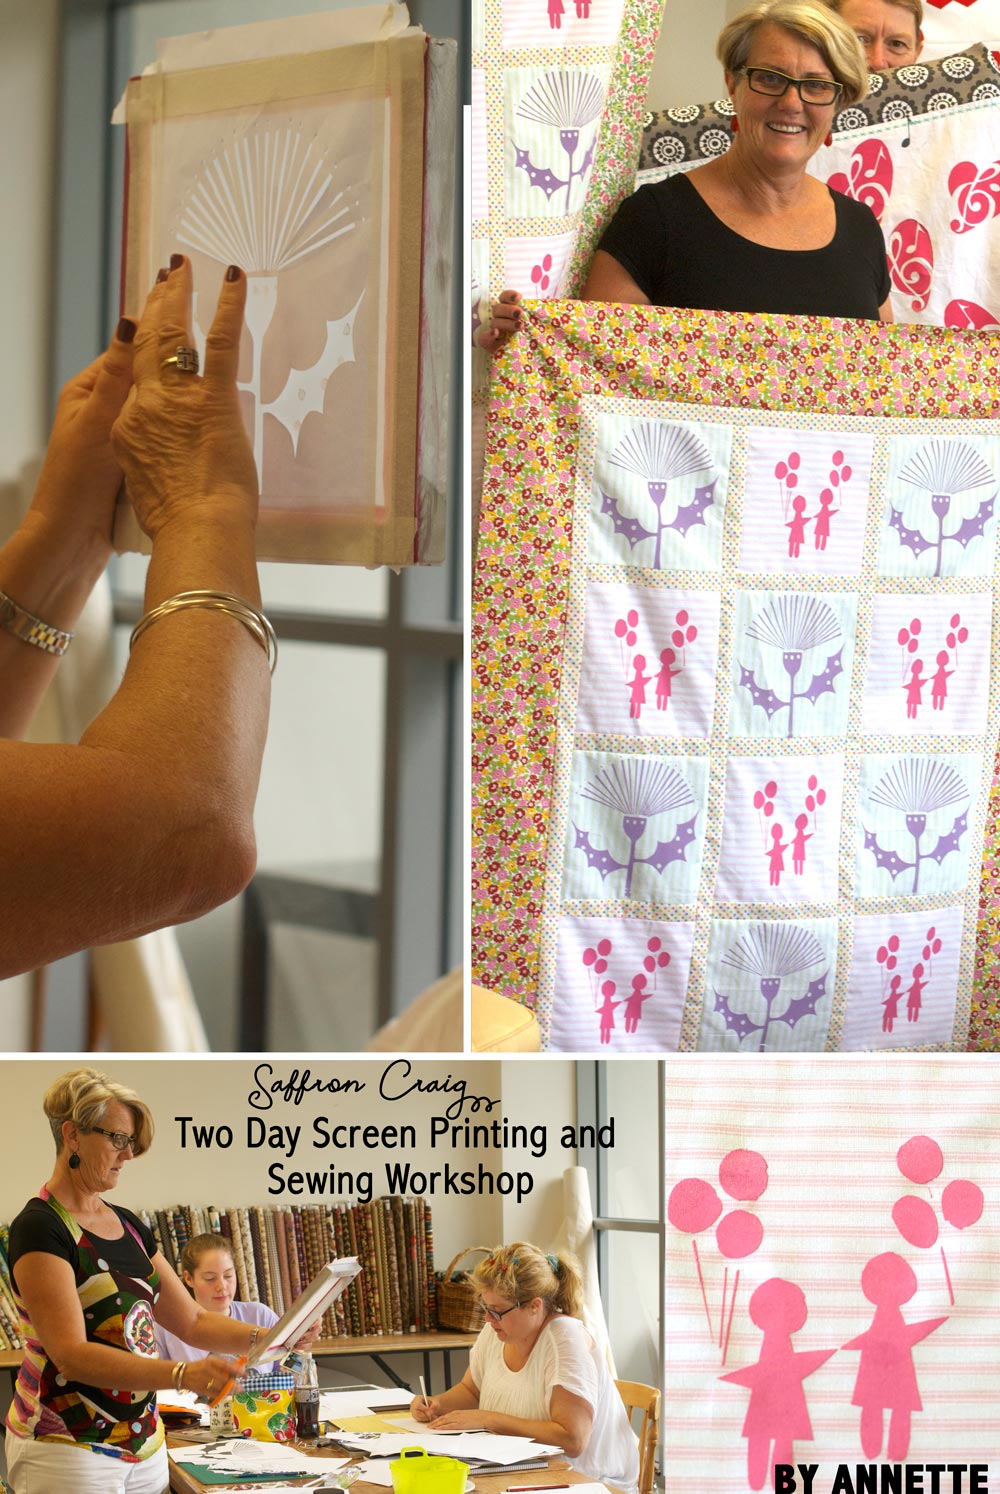 Saffron Craig 2 Day Workshop including Fabric Design and Sewing